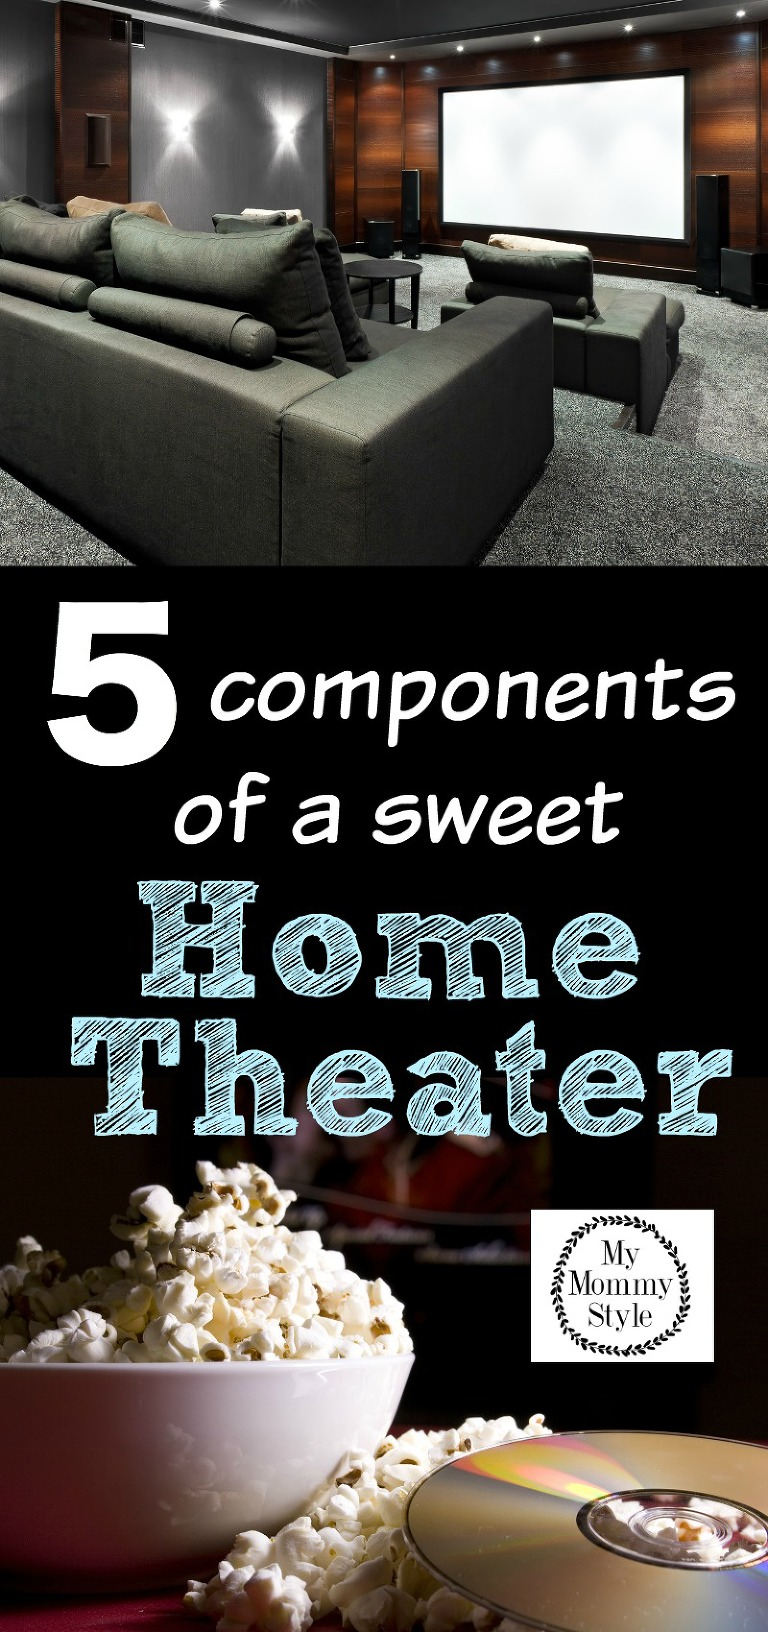 5 components of a sweet home theater